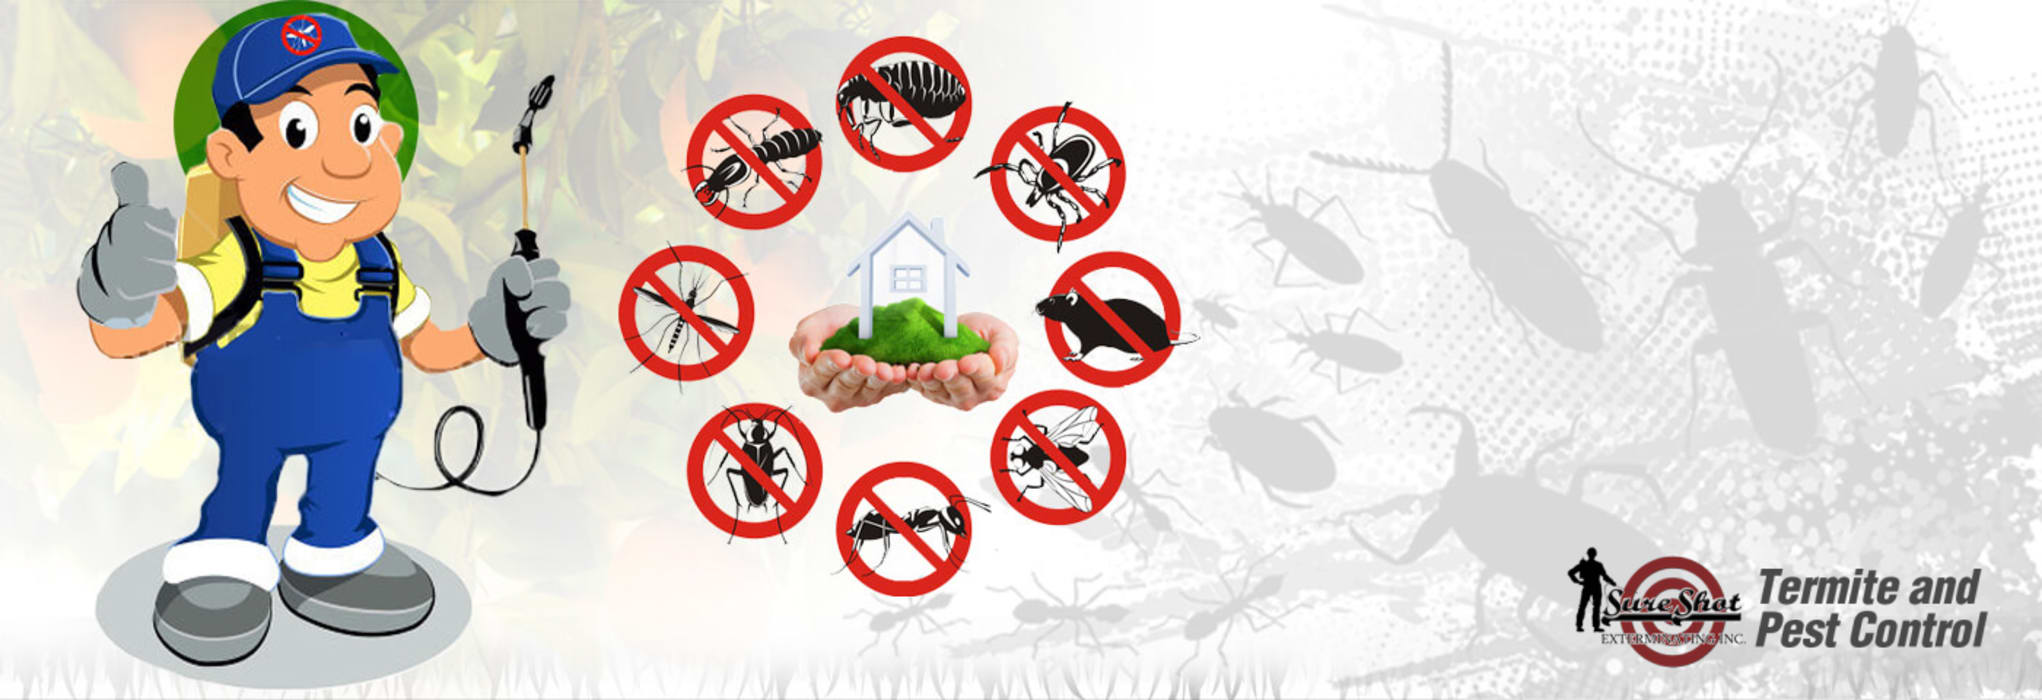 Things You Need To Know About Pest Control Services and Technology Home Renovation Floors